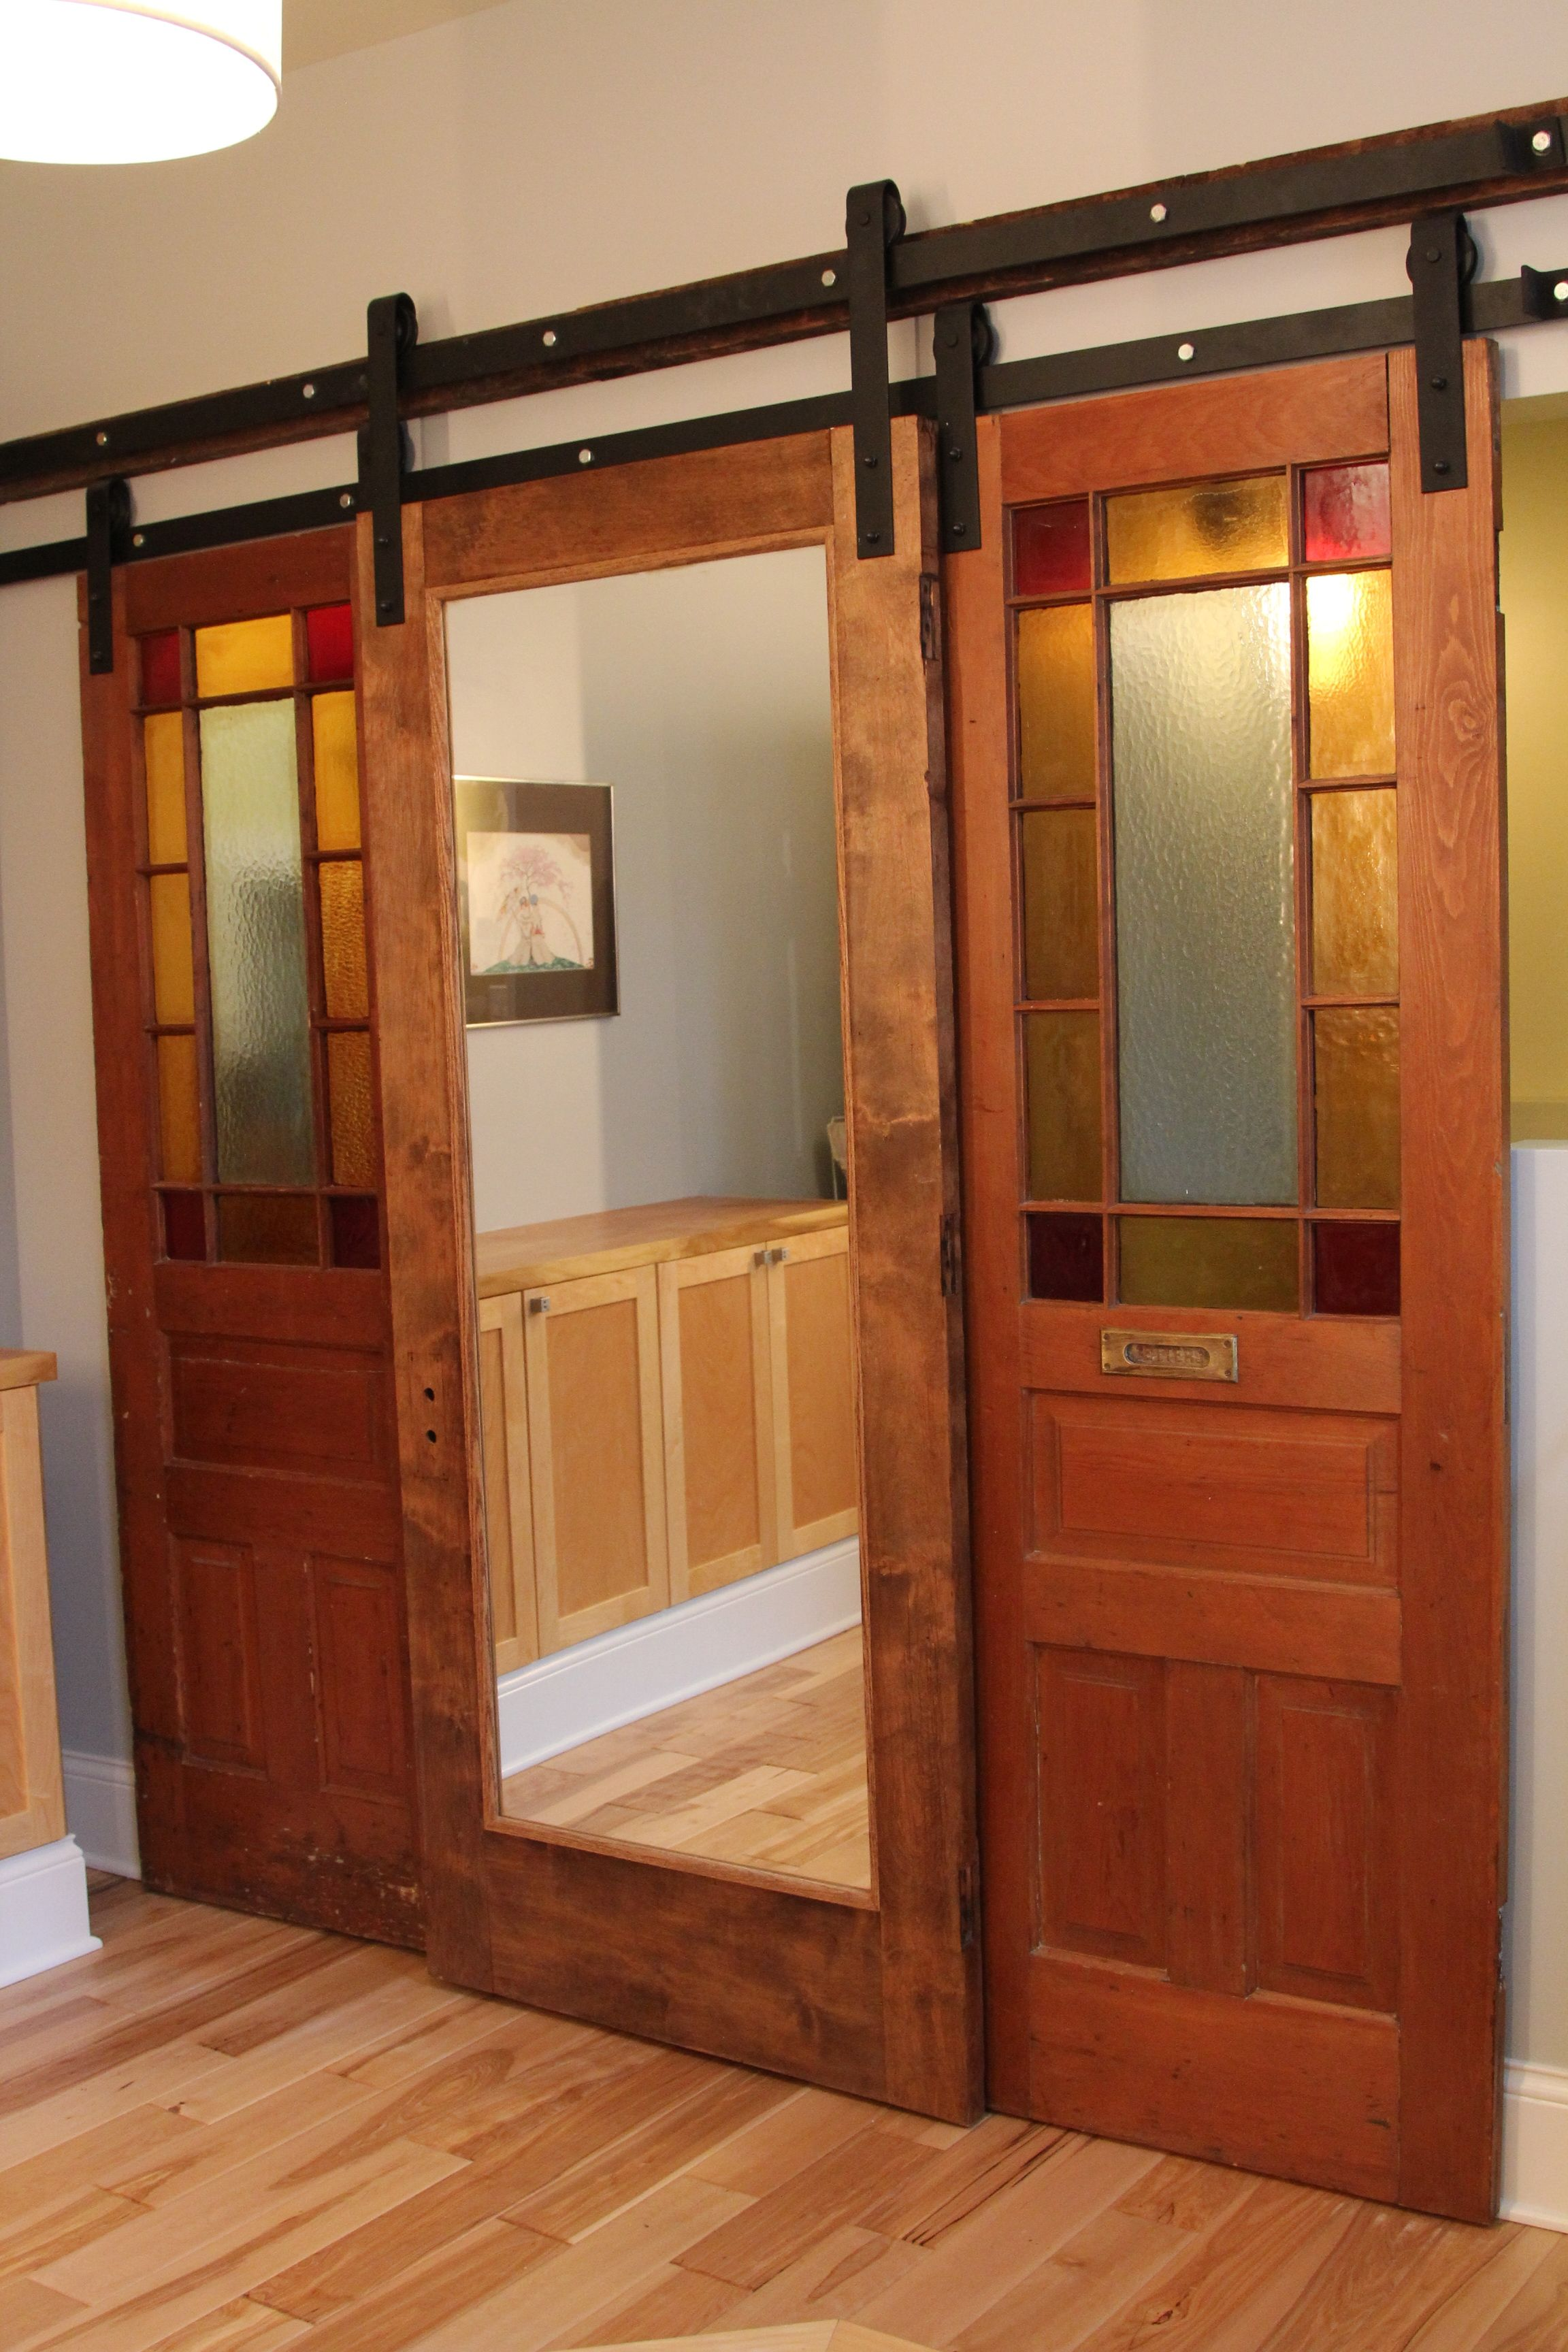 images style image sale ideas lovely barn wooden modern of photos hardware for choice wood houston craigslist old door doors inspirational interior reclaimed design